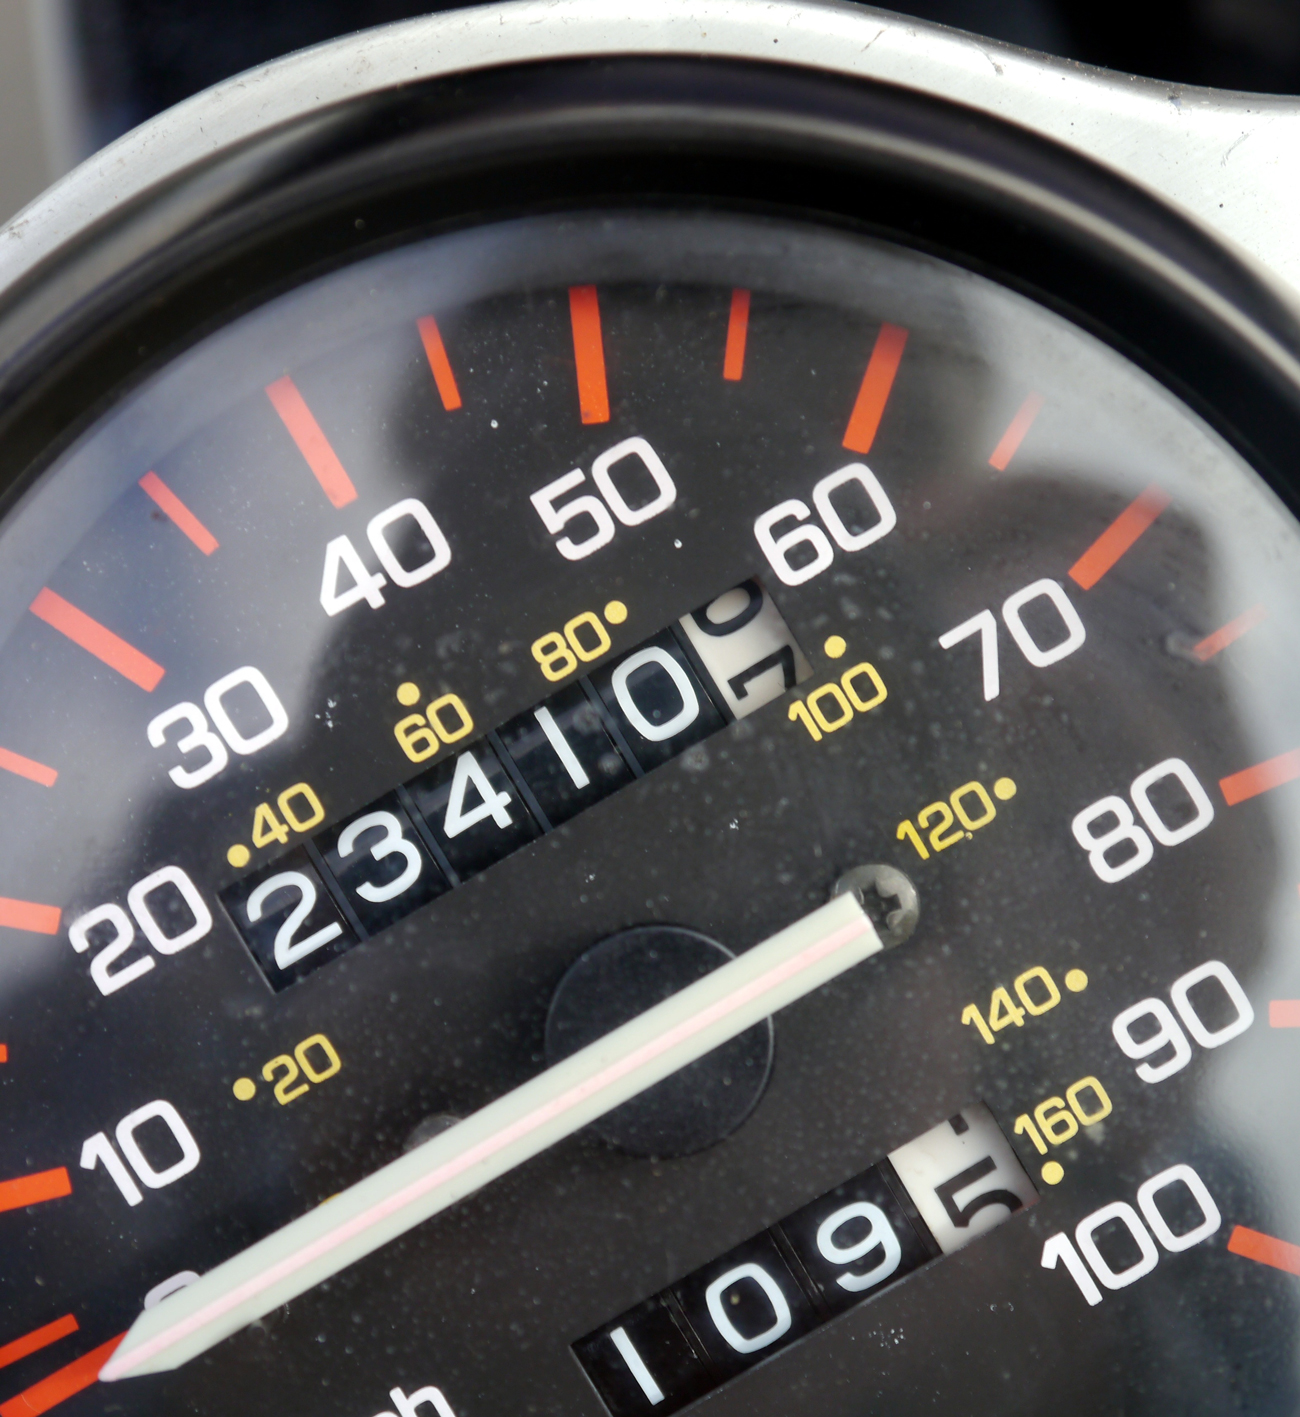 A speedometer dial in a car